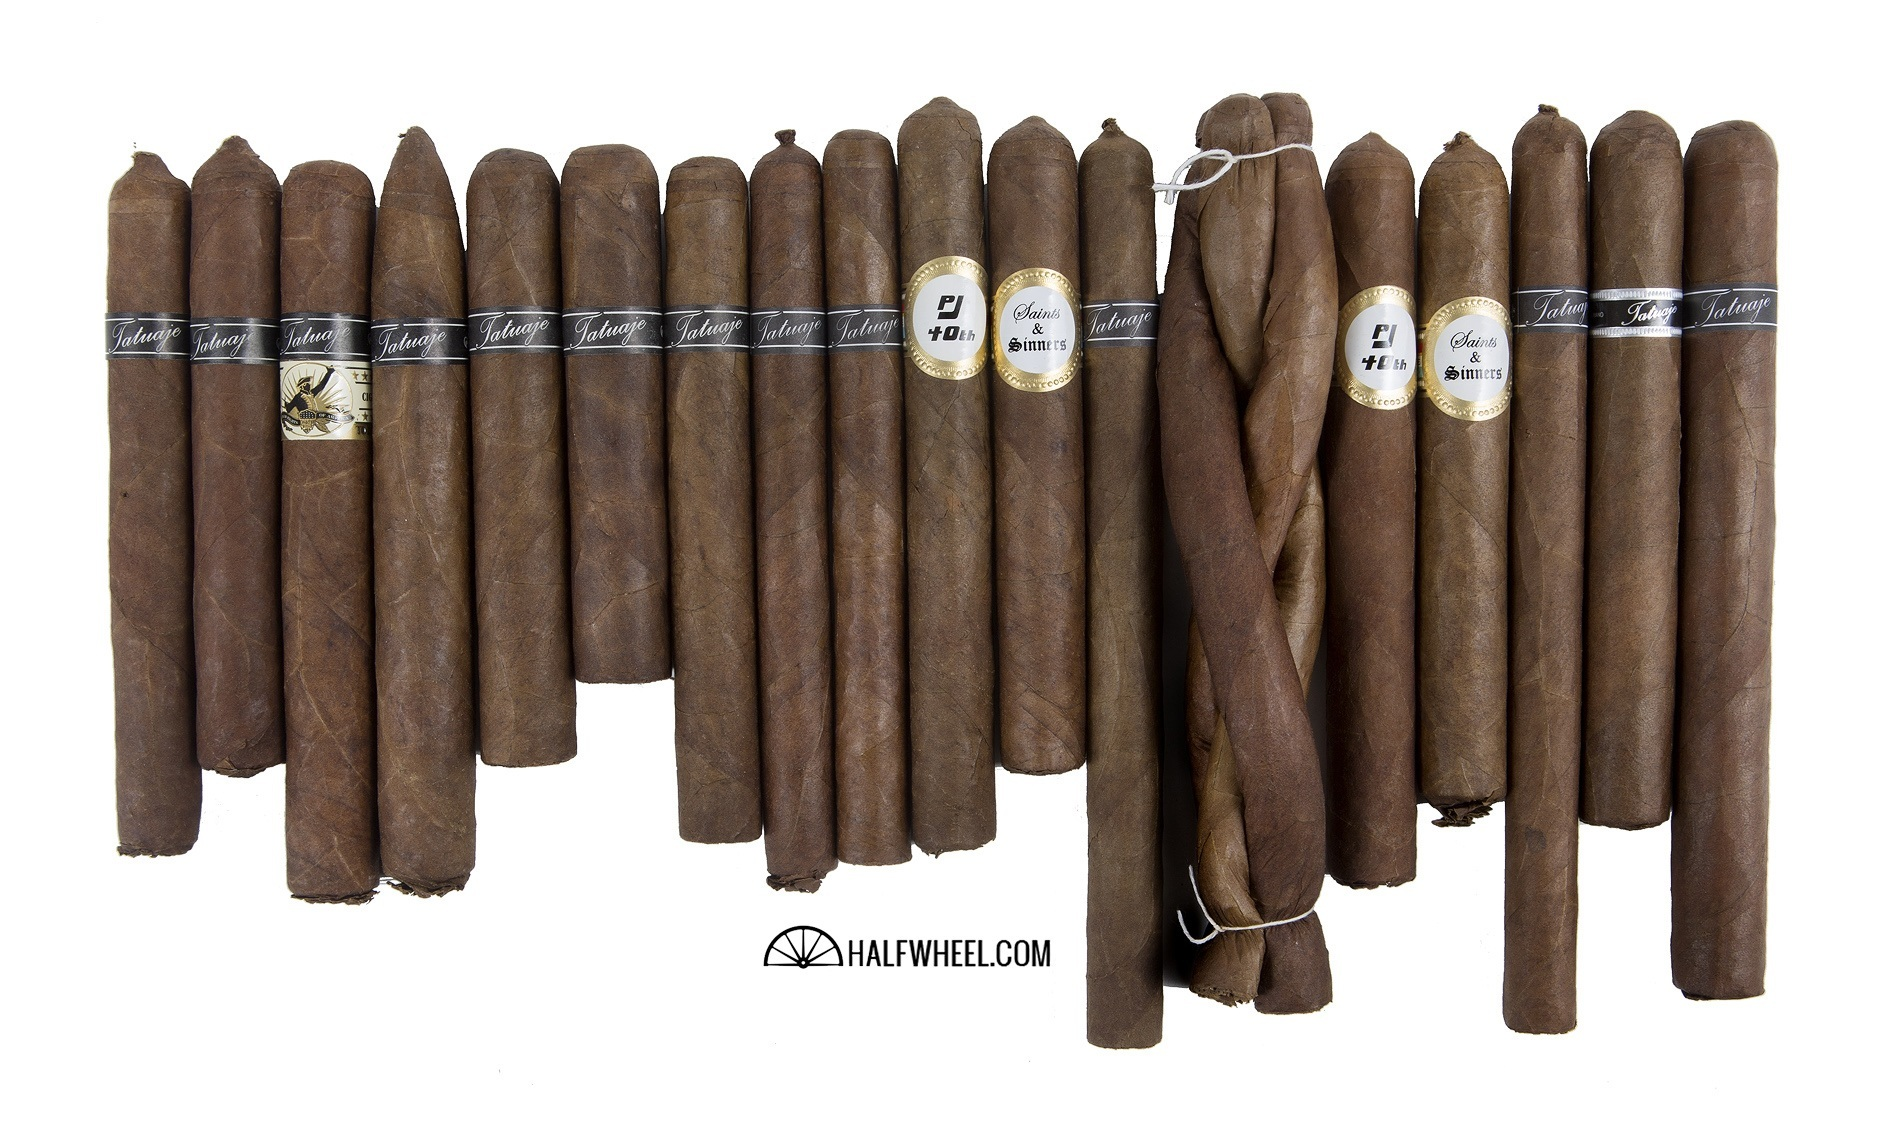 Tatuaje Black Label Collections